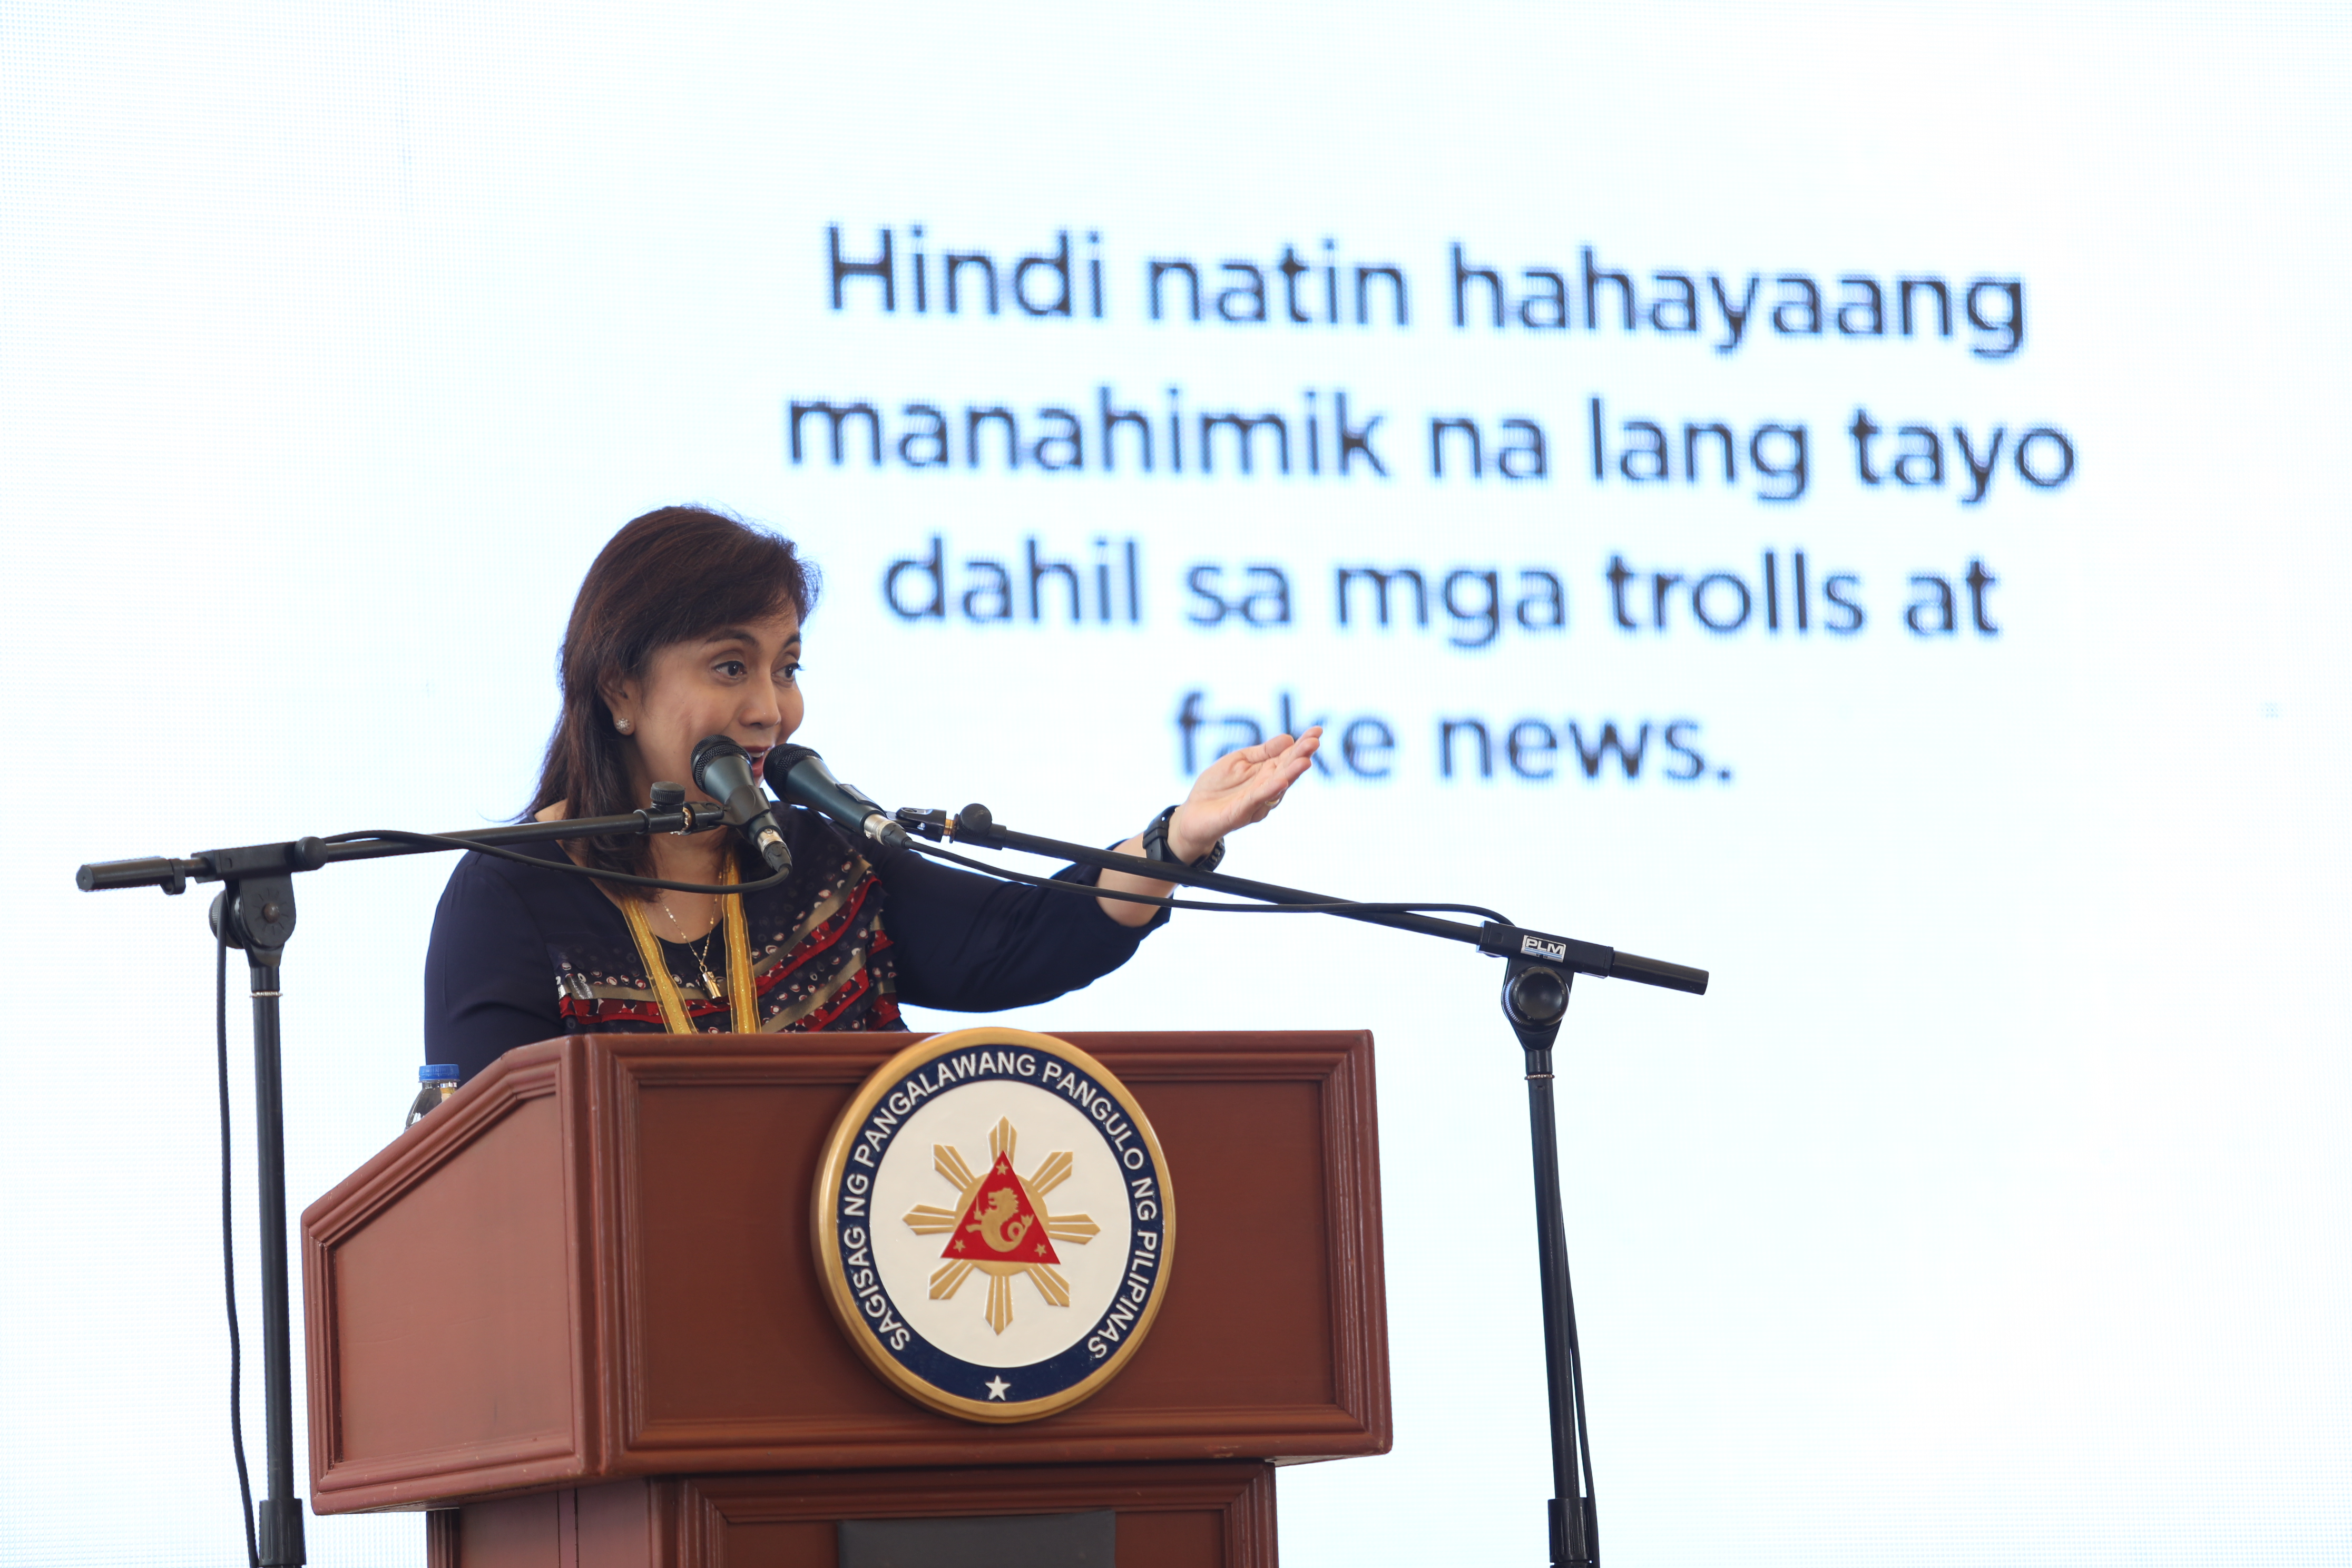 NO TO FAKE NEWS. Robredo attends the Istorya ng Pag-asa Photo Gallery launch in Novaliches, Quezon City on July 25. Photo by OVP